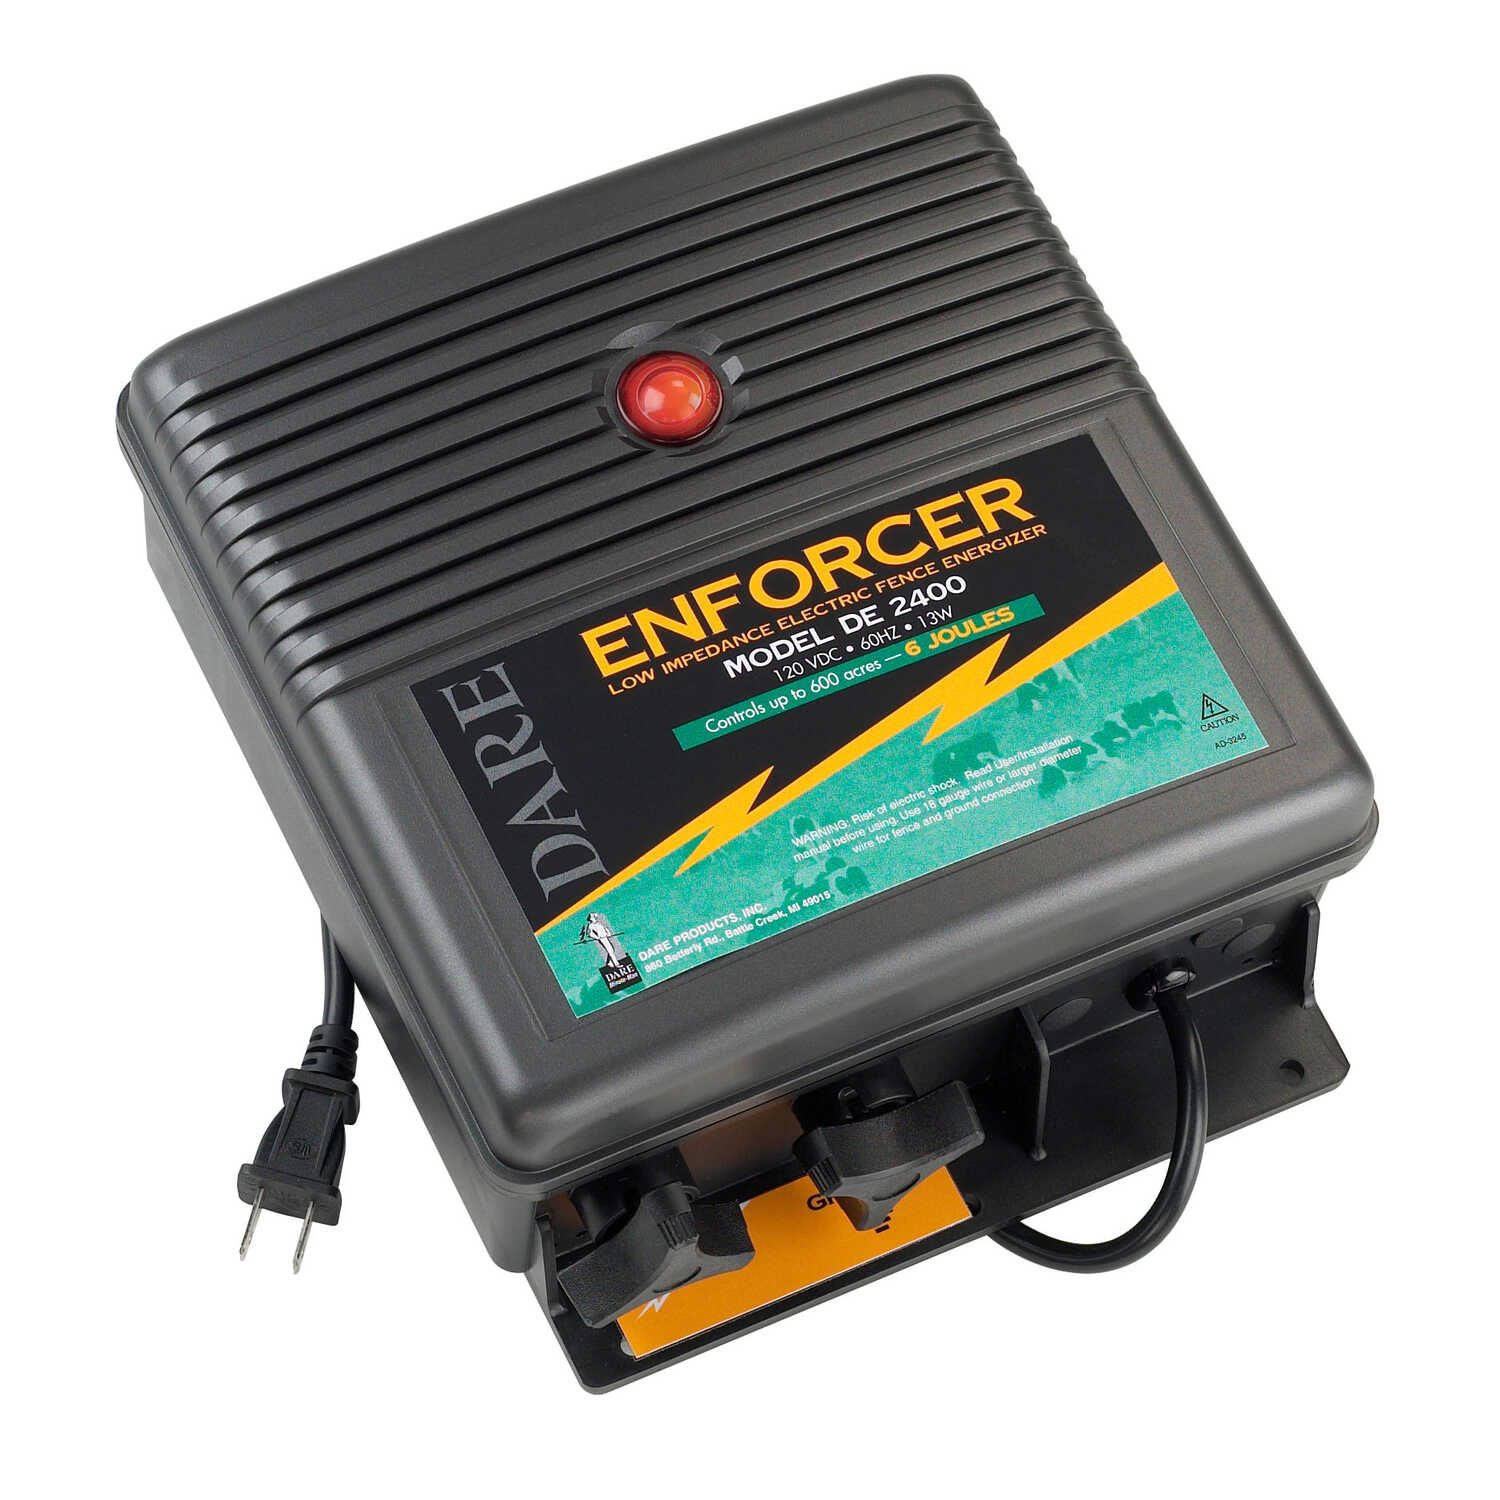 Dare Products  Enforcer  110 volt Electric-Powered  Fence Energizer  Black  600 acres